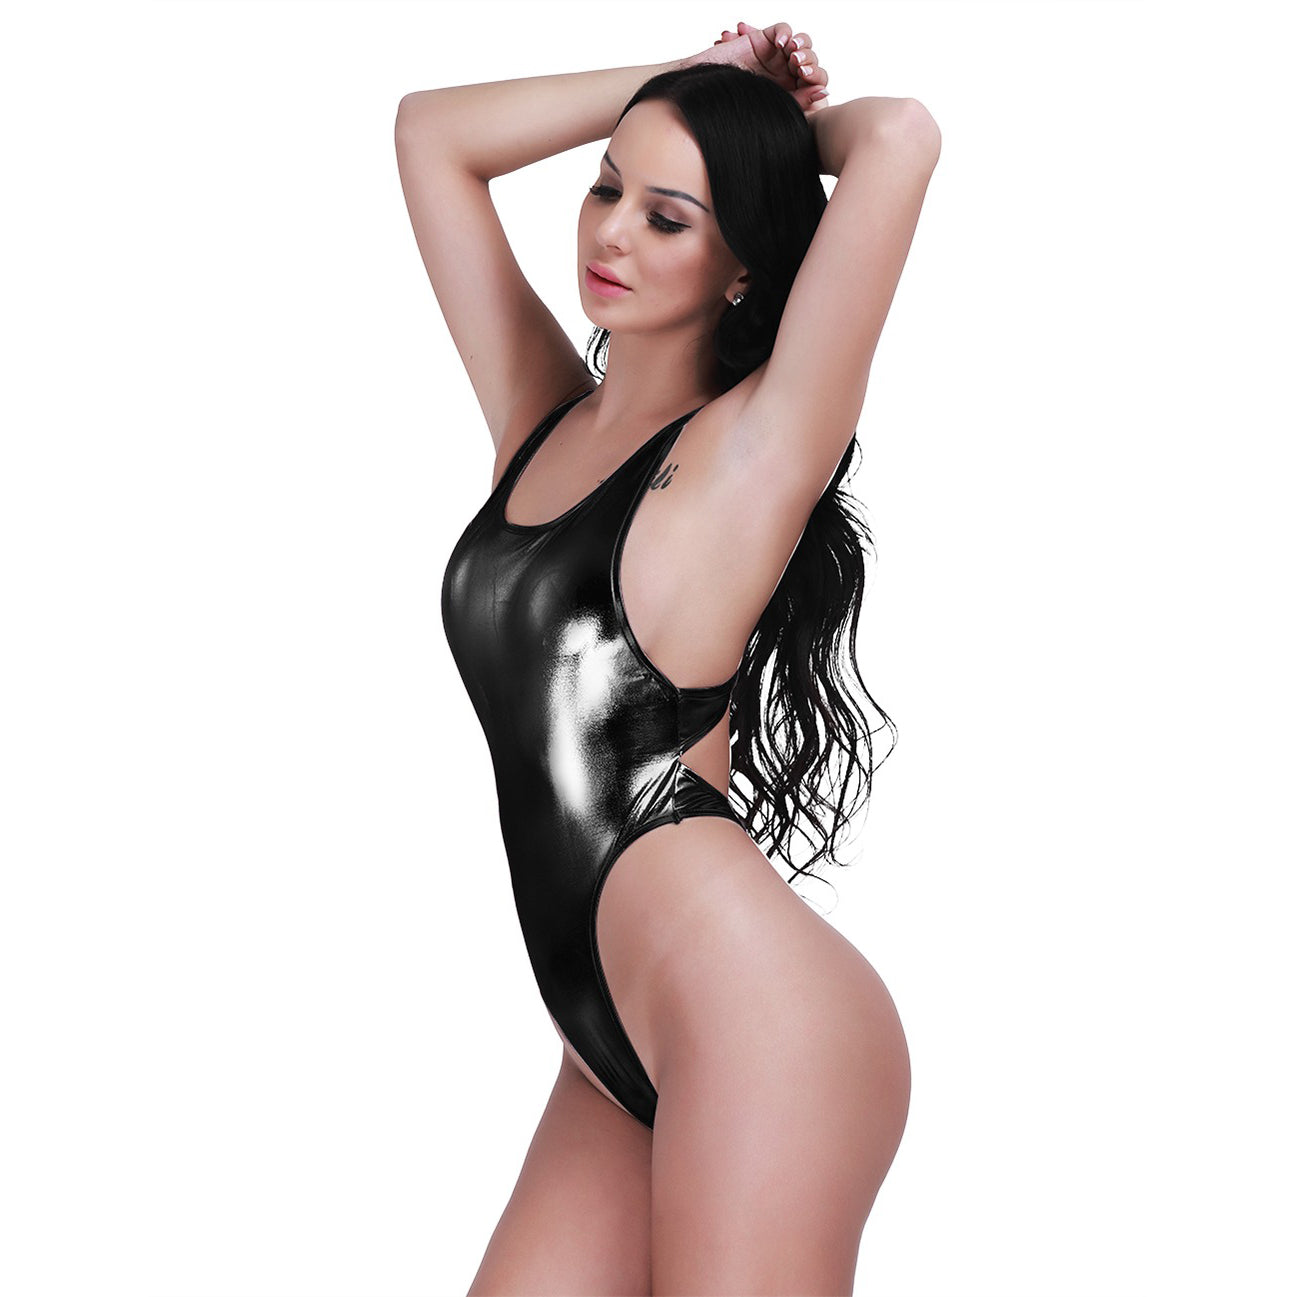 Shiny Latex Women's Bodysuit / Thong Sexy Leotard BodySuit / Faux Leather Erotic One Piece Costume - HARD'N'HEAVY